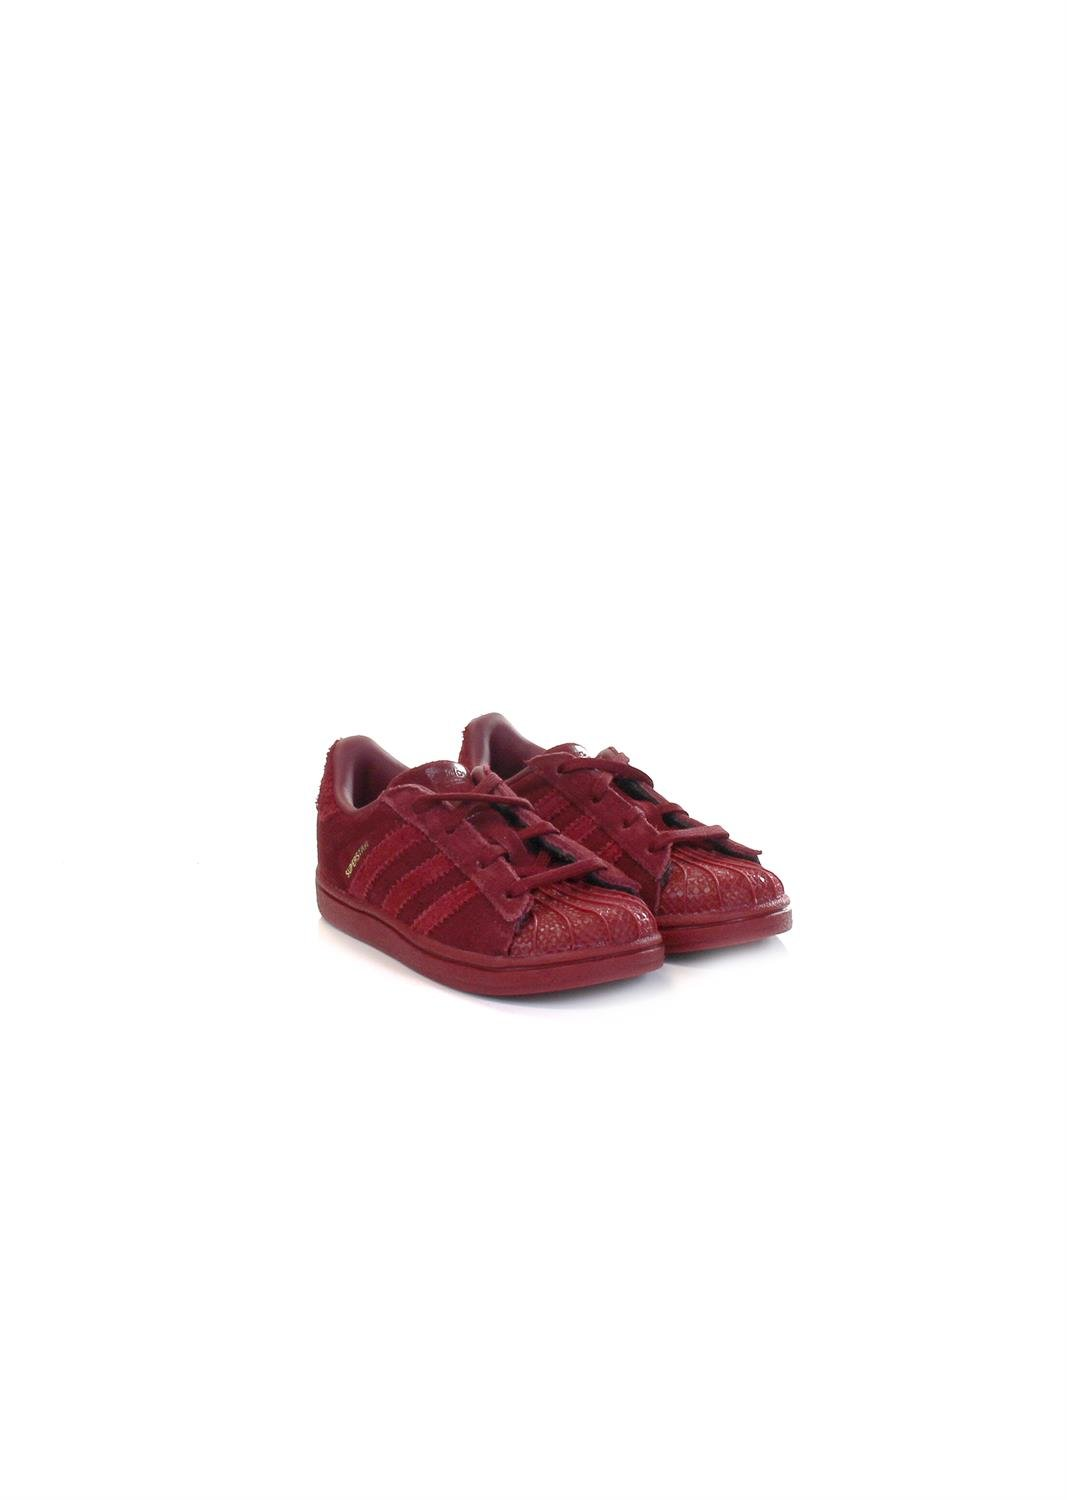 Scarpe kids ADIDAS SUPERSTAR in pelle e suede sintetico bordeaux CG3742